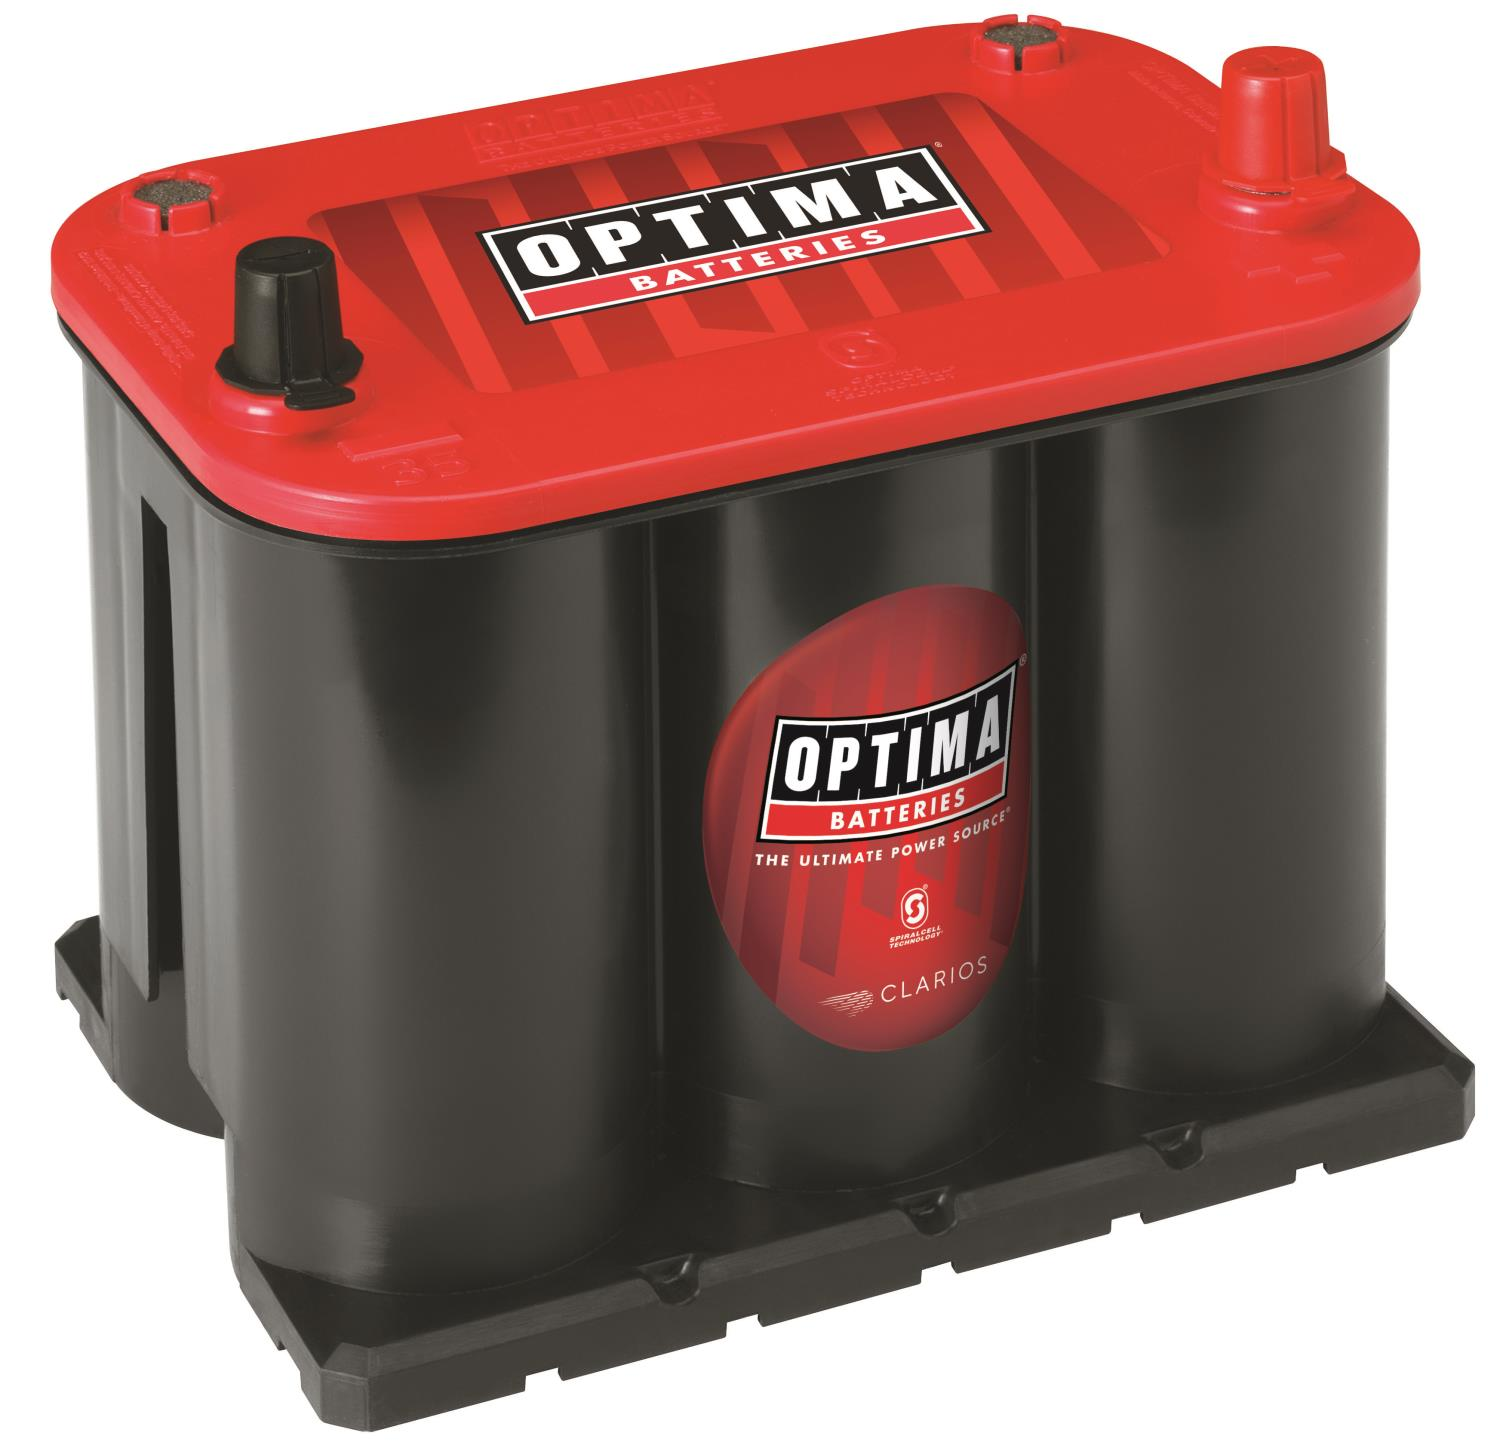 Optima Batteries 9020-164